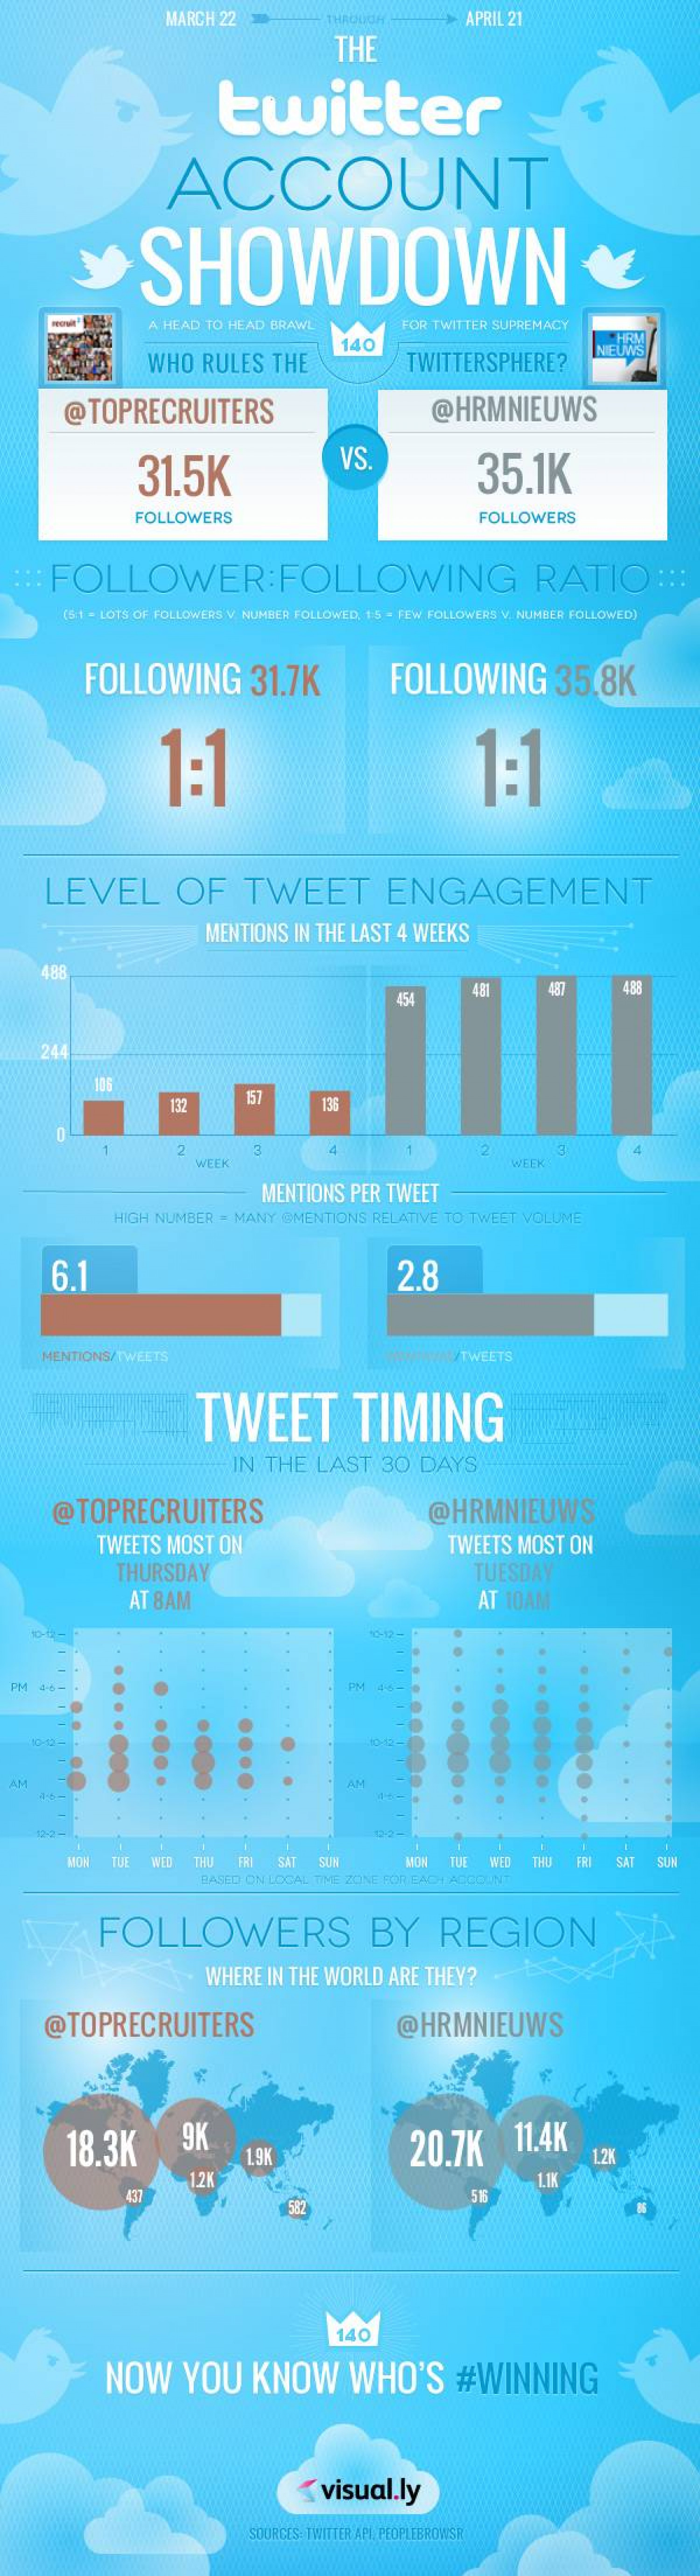 Twitter Account Showdown Infographic